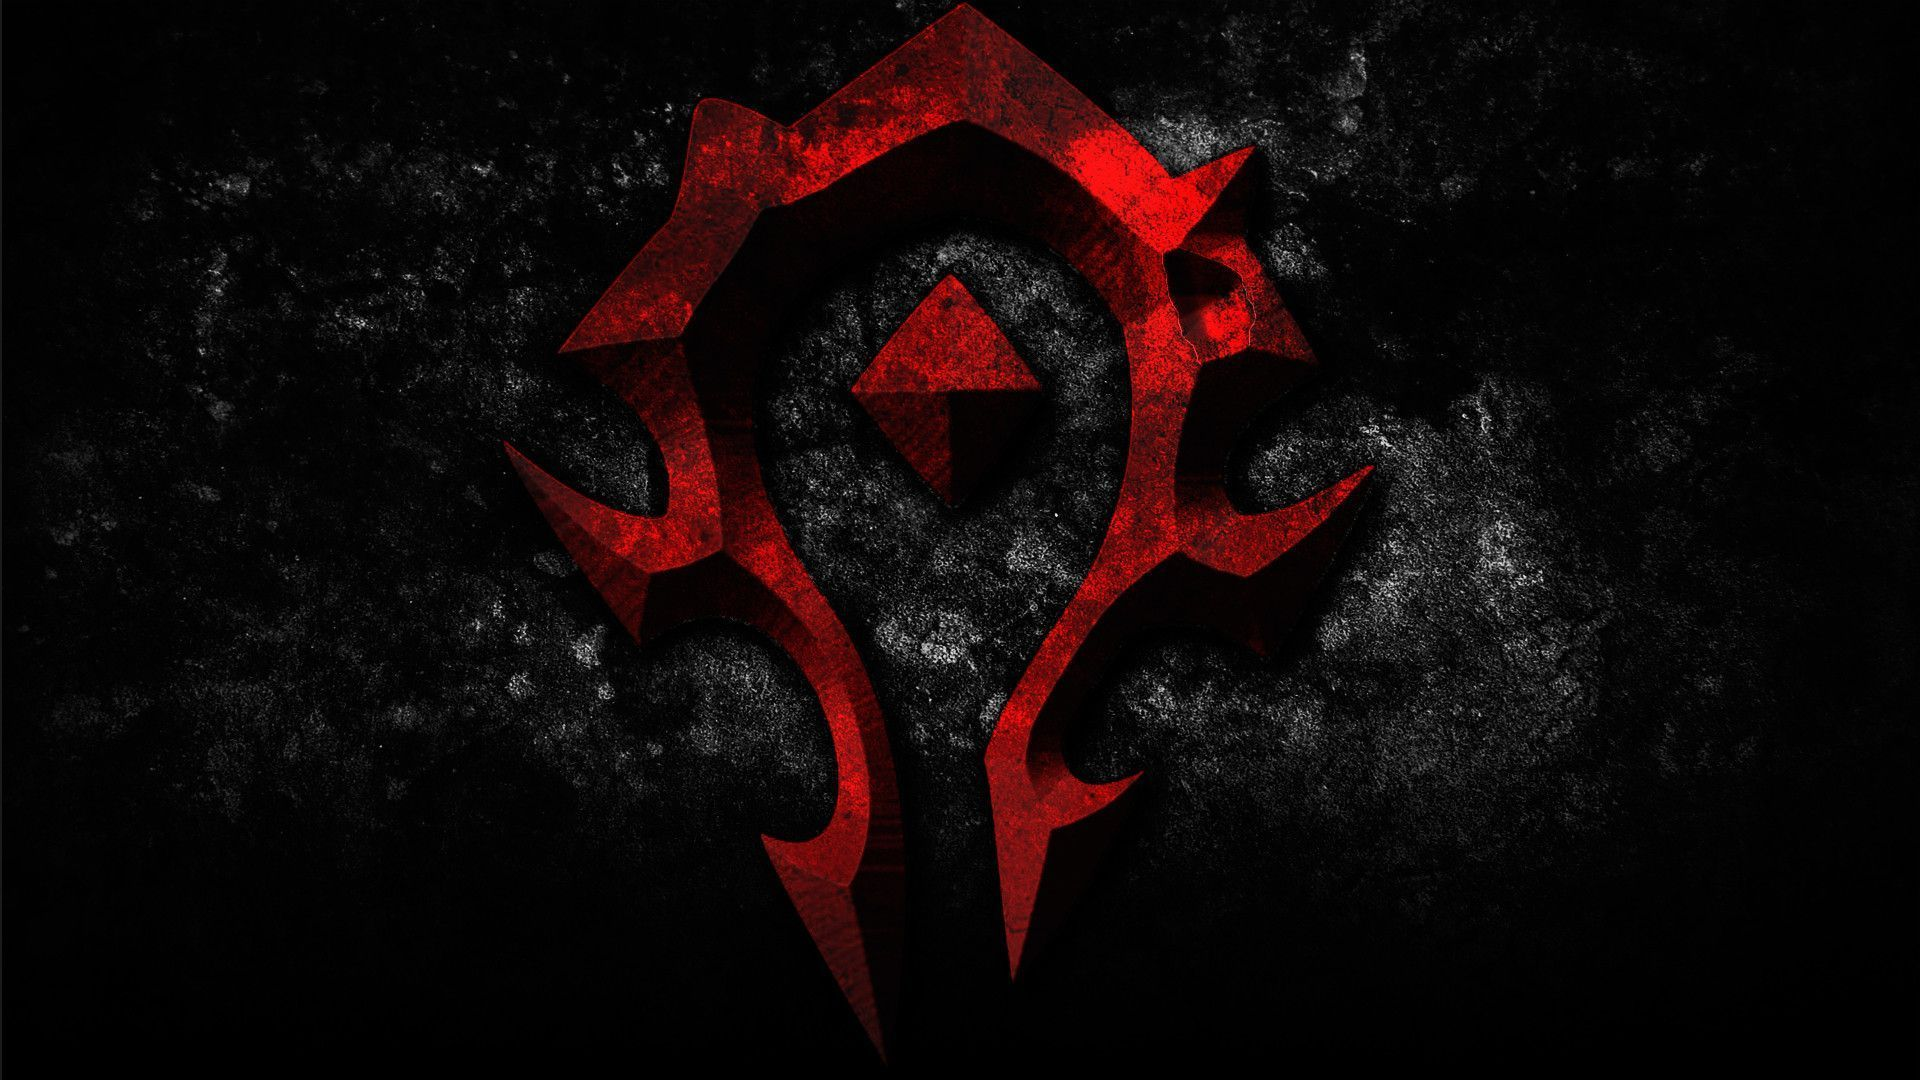 Warcraft Horde Logo Symbol Wallpaper Hd Wallpaper Feedwallpaper